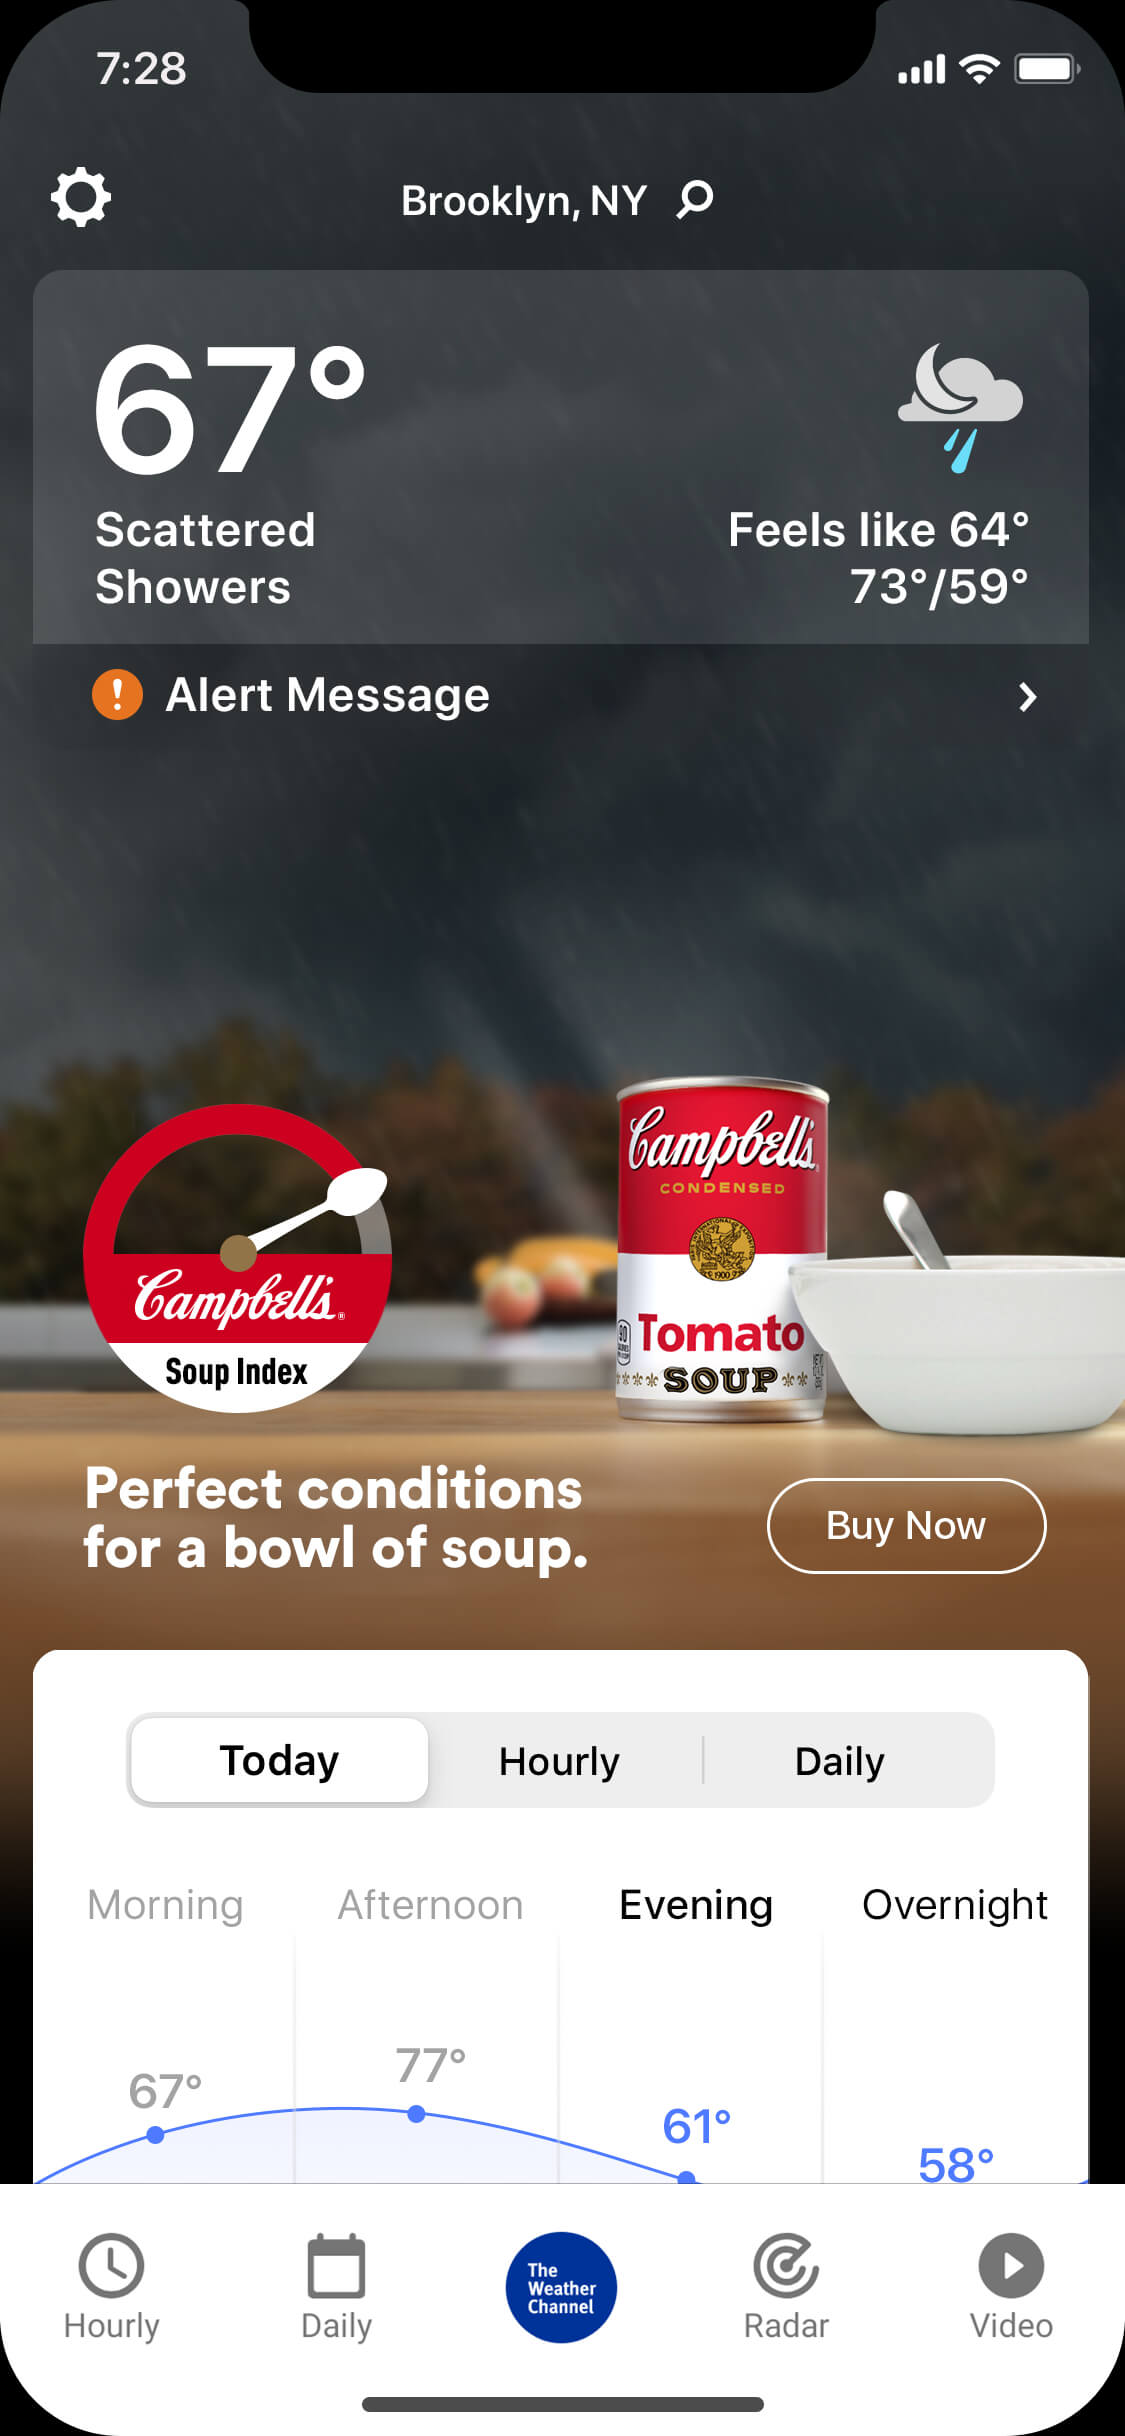 campbells-soup-index-maim_rainy-night